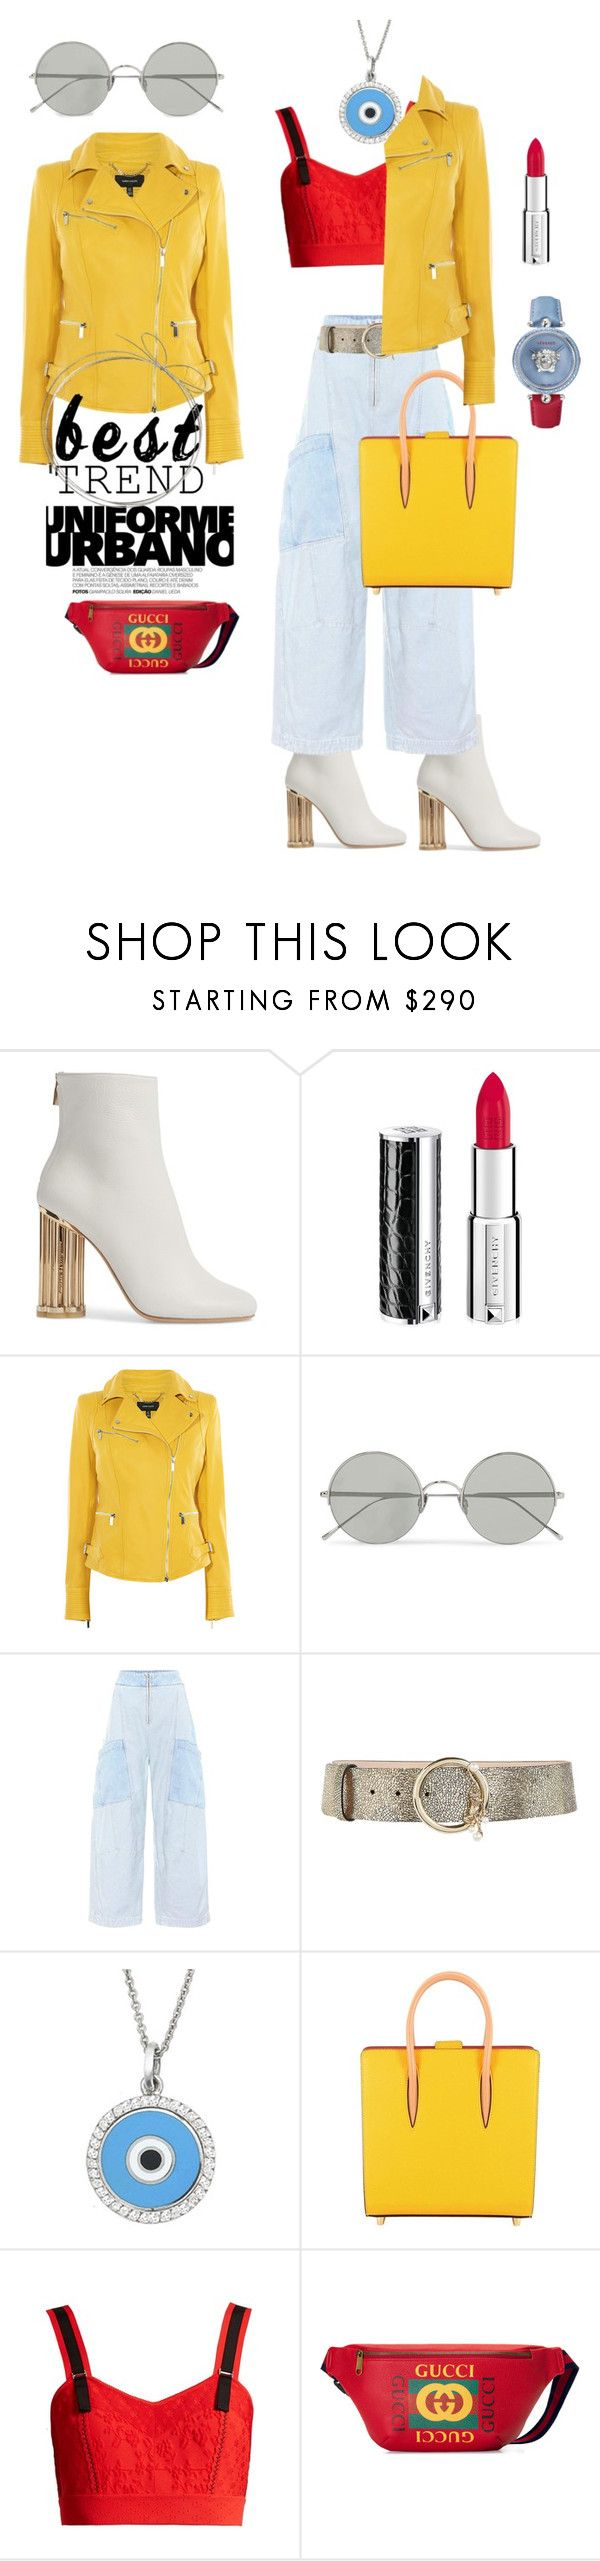 """Wide leg jeans with ankle boots and Yellow details"" by fashioncoloristnyc ❤ liked on Polyvore featuring Salvatore Ferragamo, Givenchy, Karen Millen, Sunday Somewhere, Chloé, Alberta Ferretti, Aaron Basha, Christian Louboutin, Alexander McQueen and Gucci"